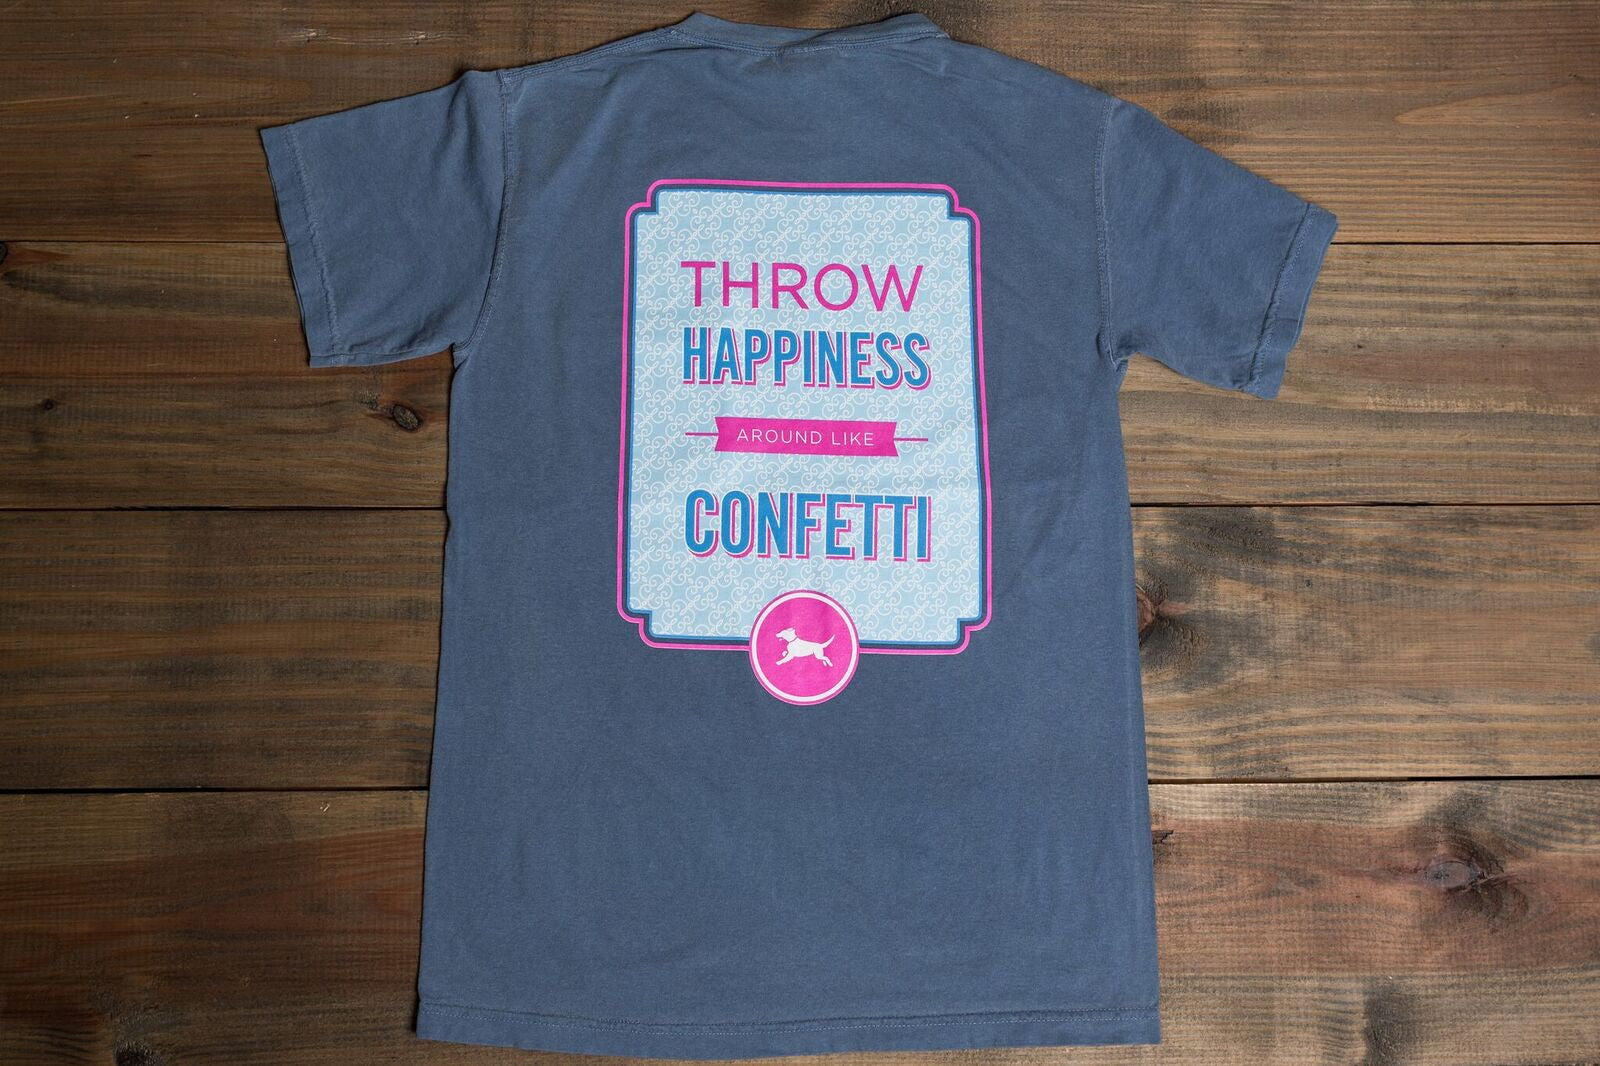 River Says... Throw Happiness around like Confetti